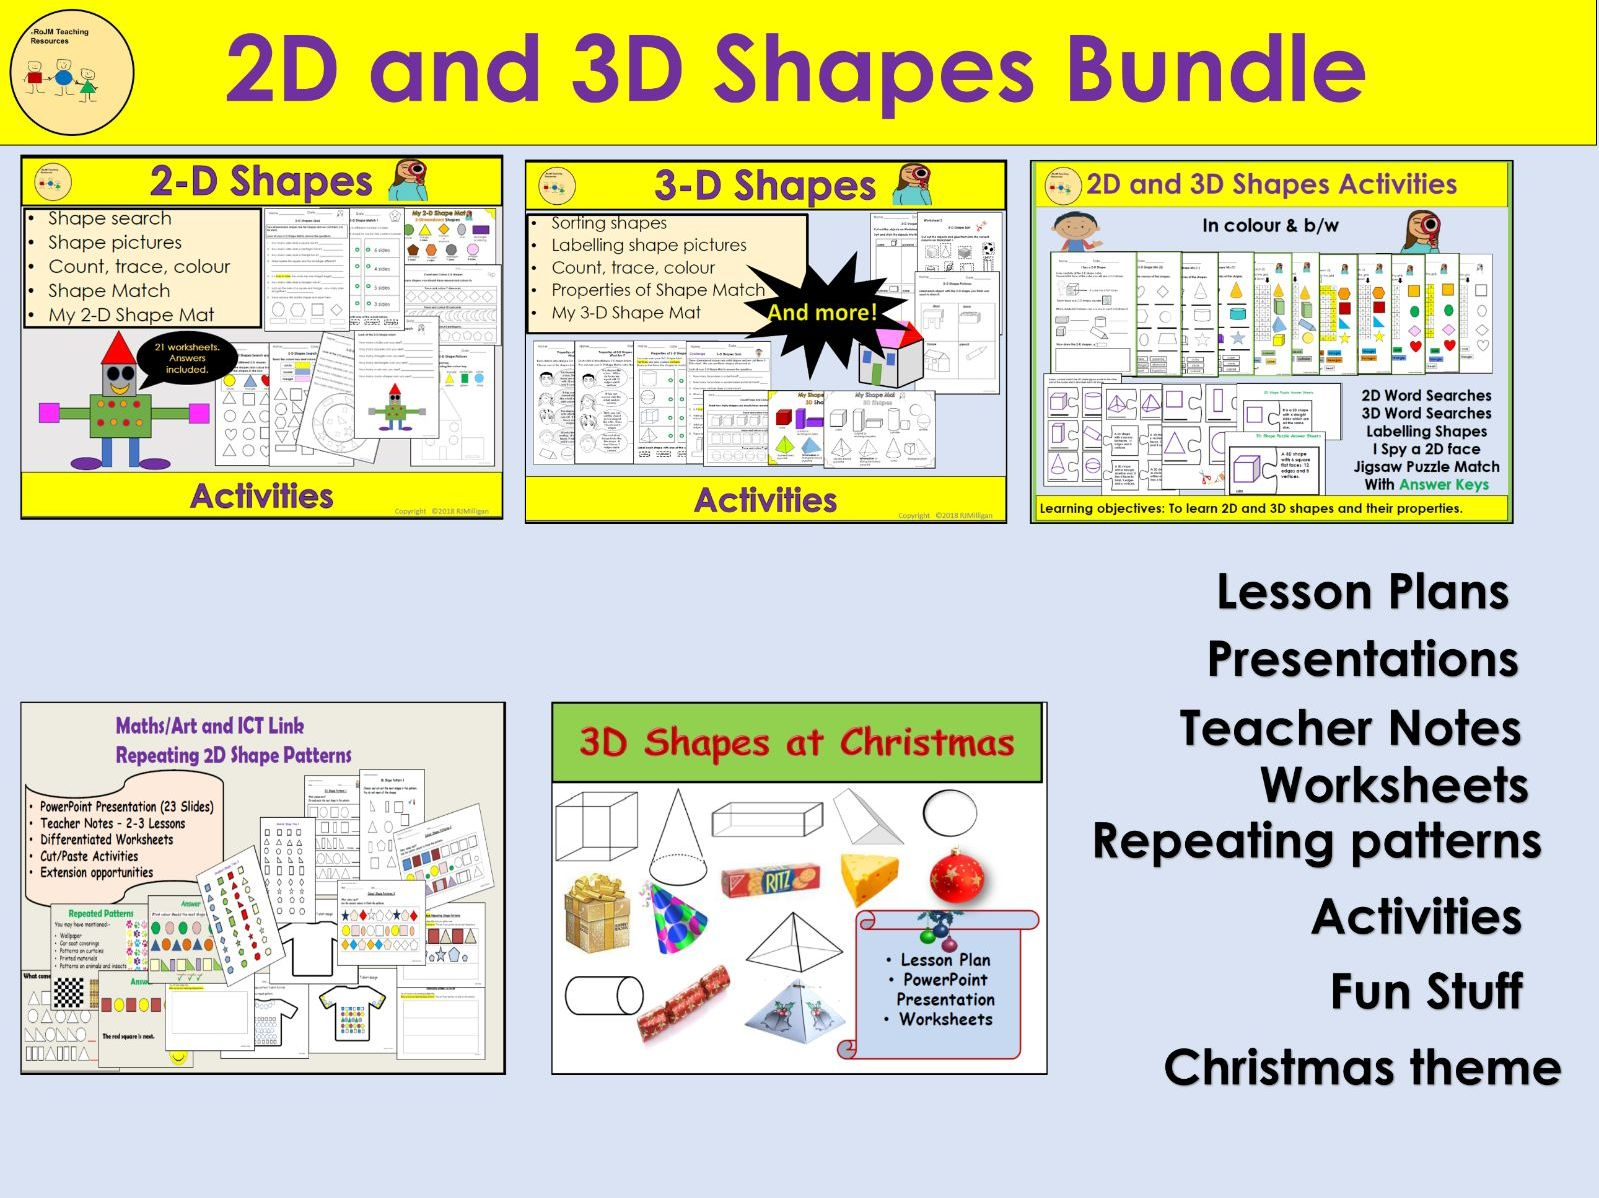 2D and 3D Shapes, Worksheets, Activities, Repeating Patterns, Presentation, Lesson Plans BUNDLE